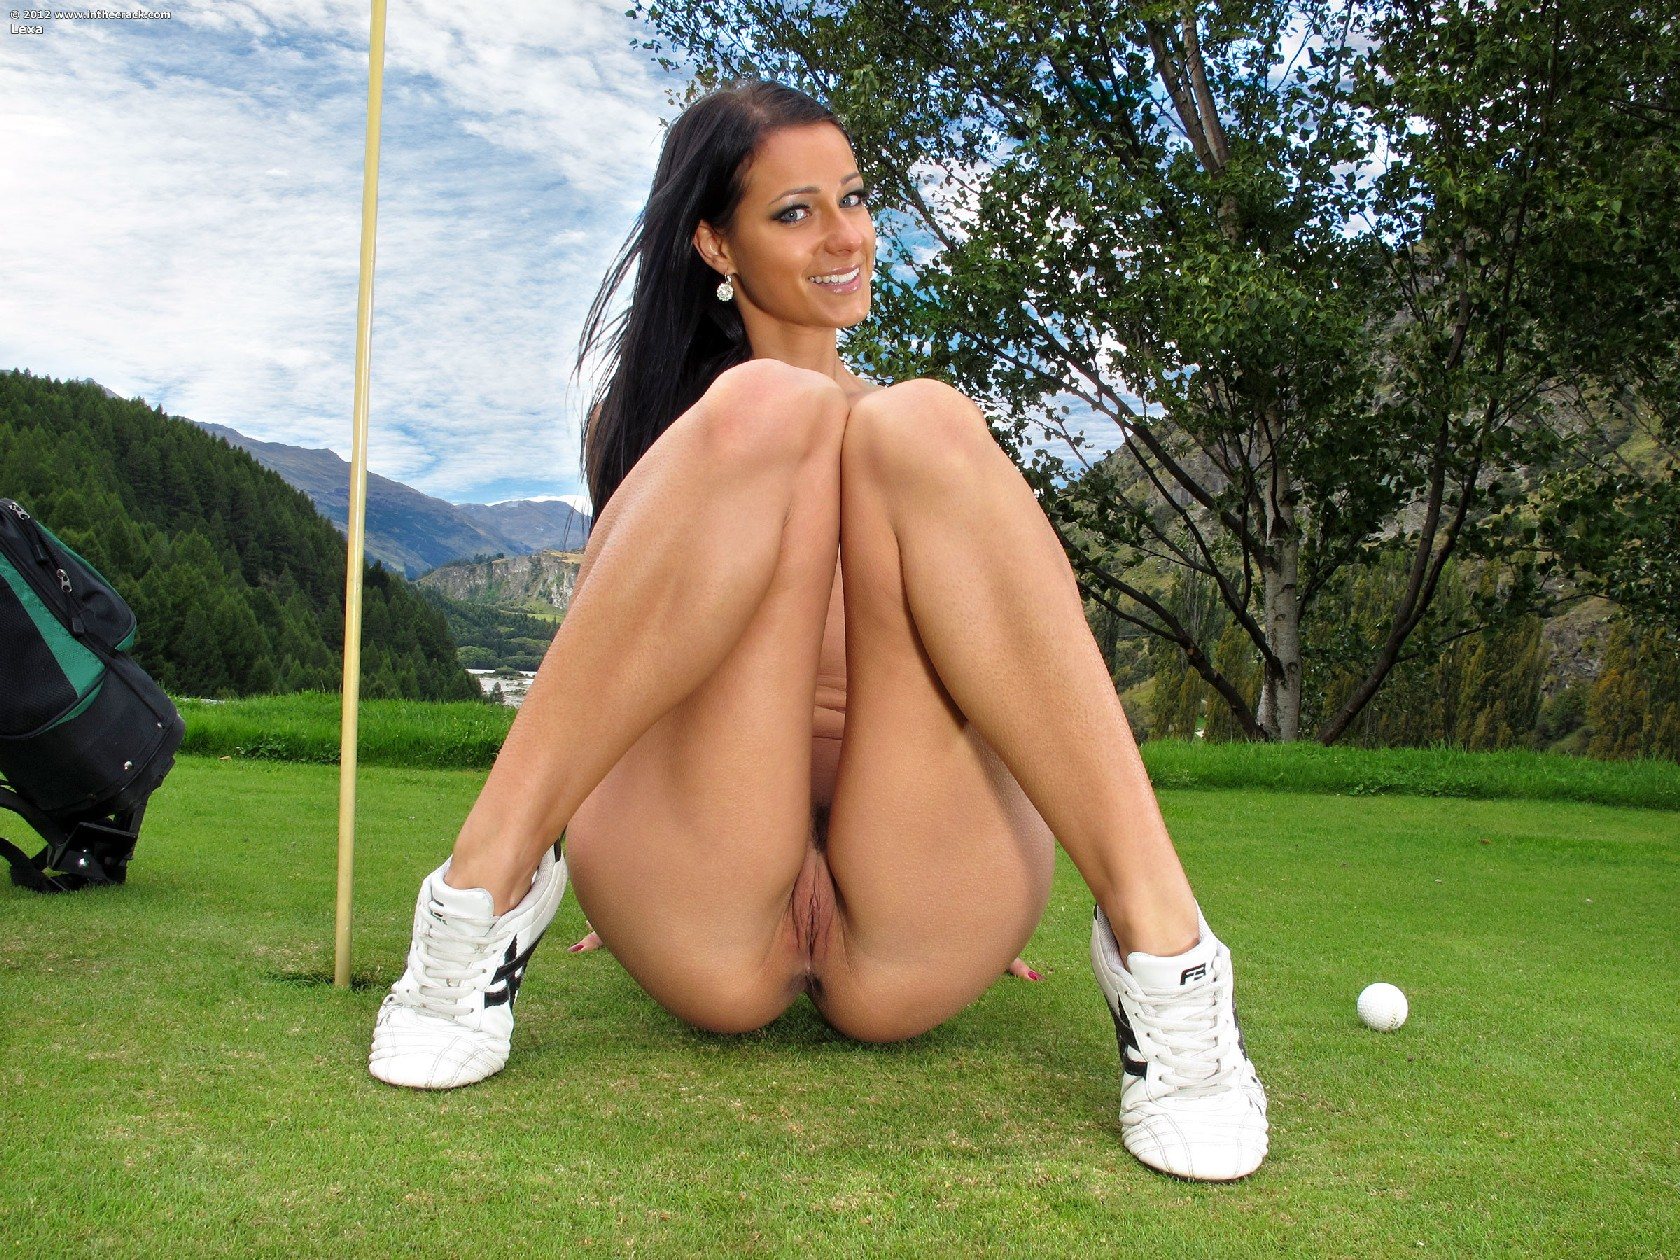 Nude golf video — pic 1